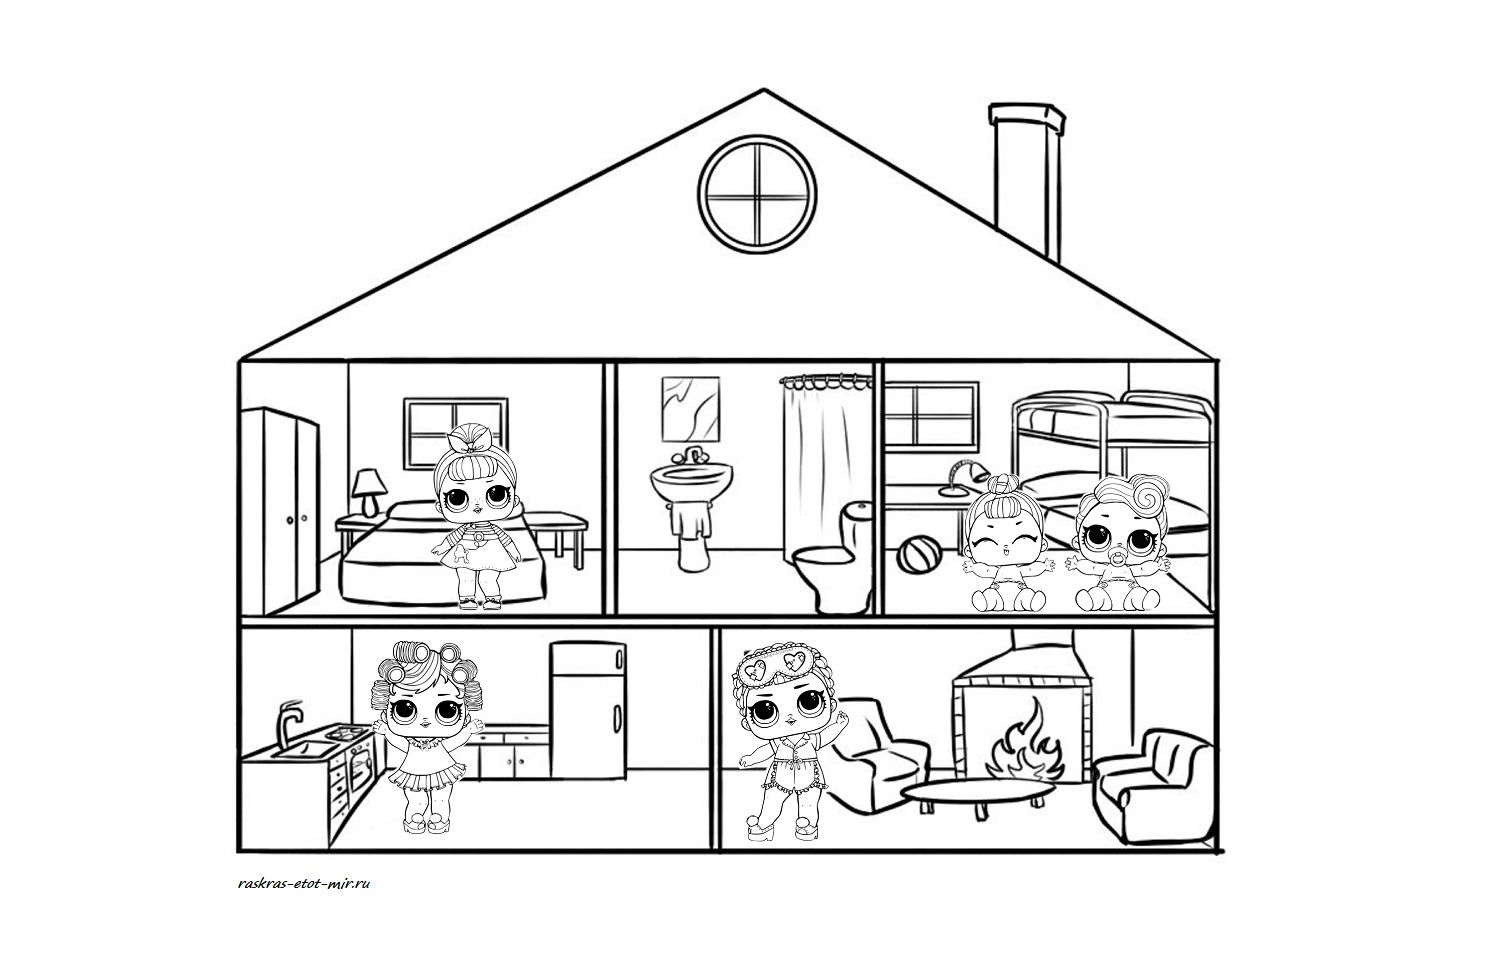 My Room Coloring Pages Lol Surprise Dolls Coloring Pages Print Them For Free All The Series